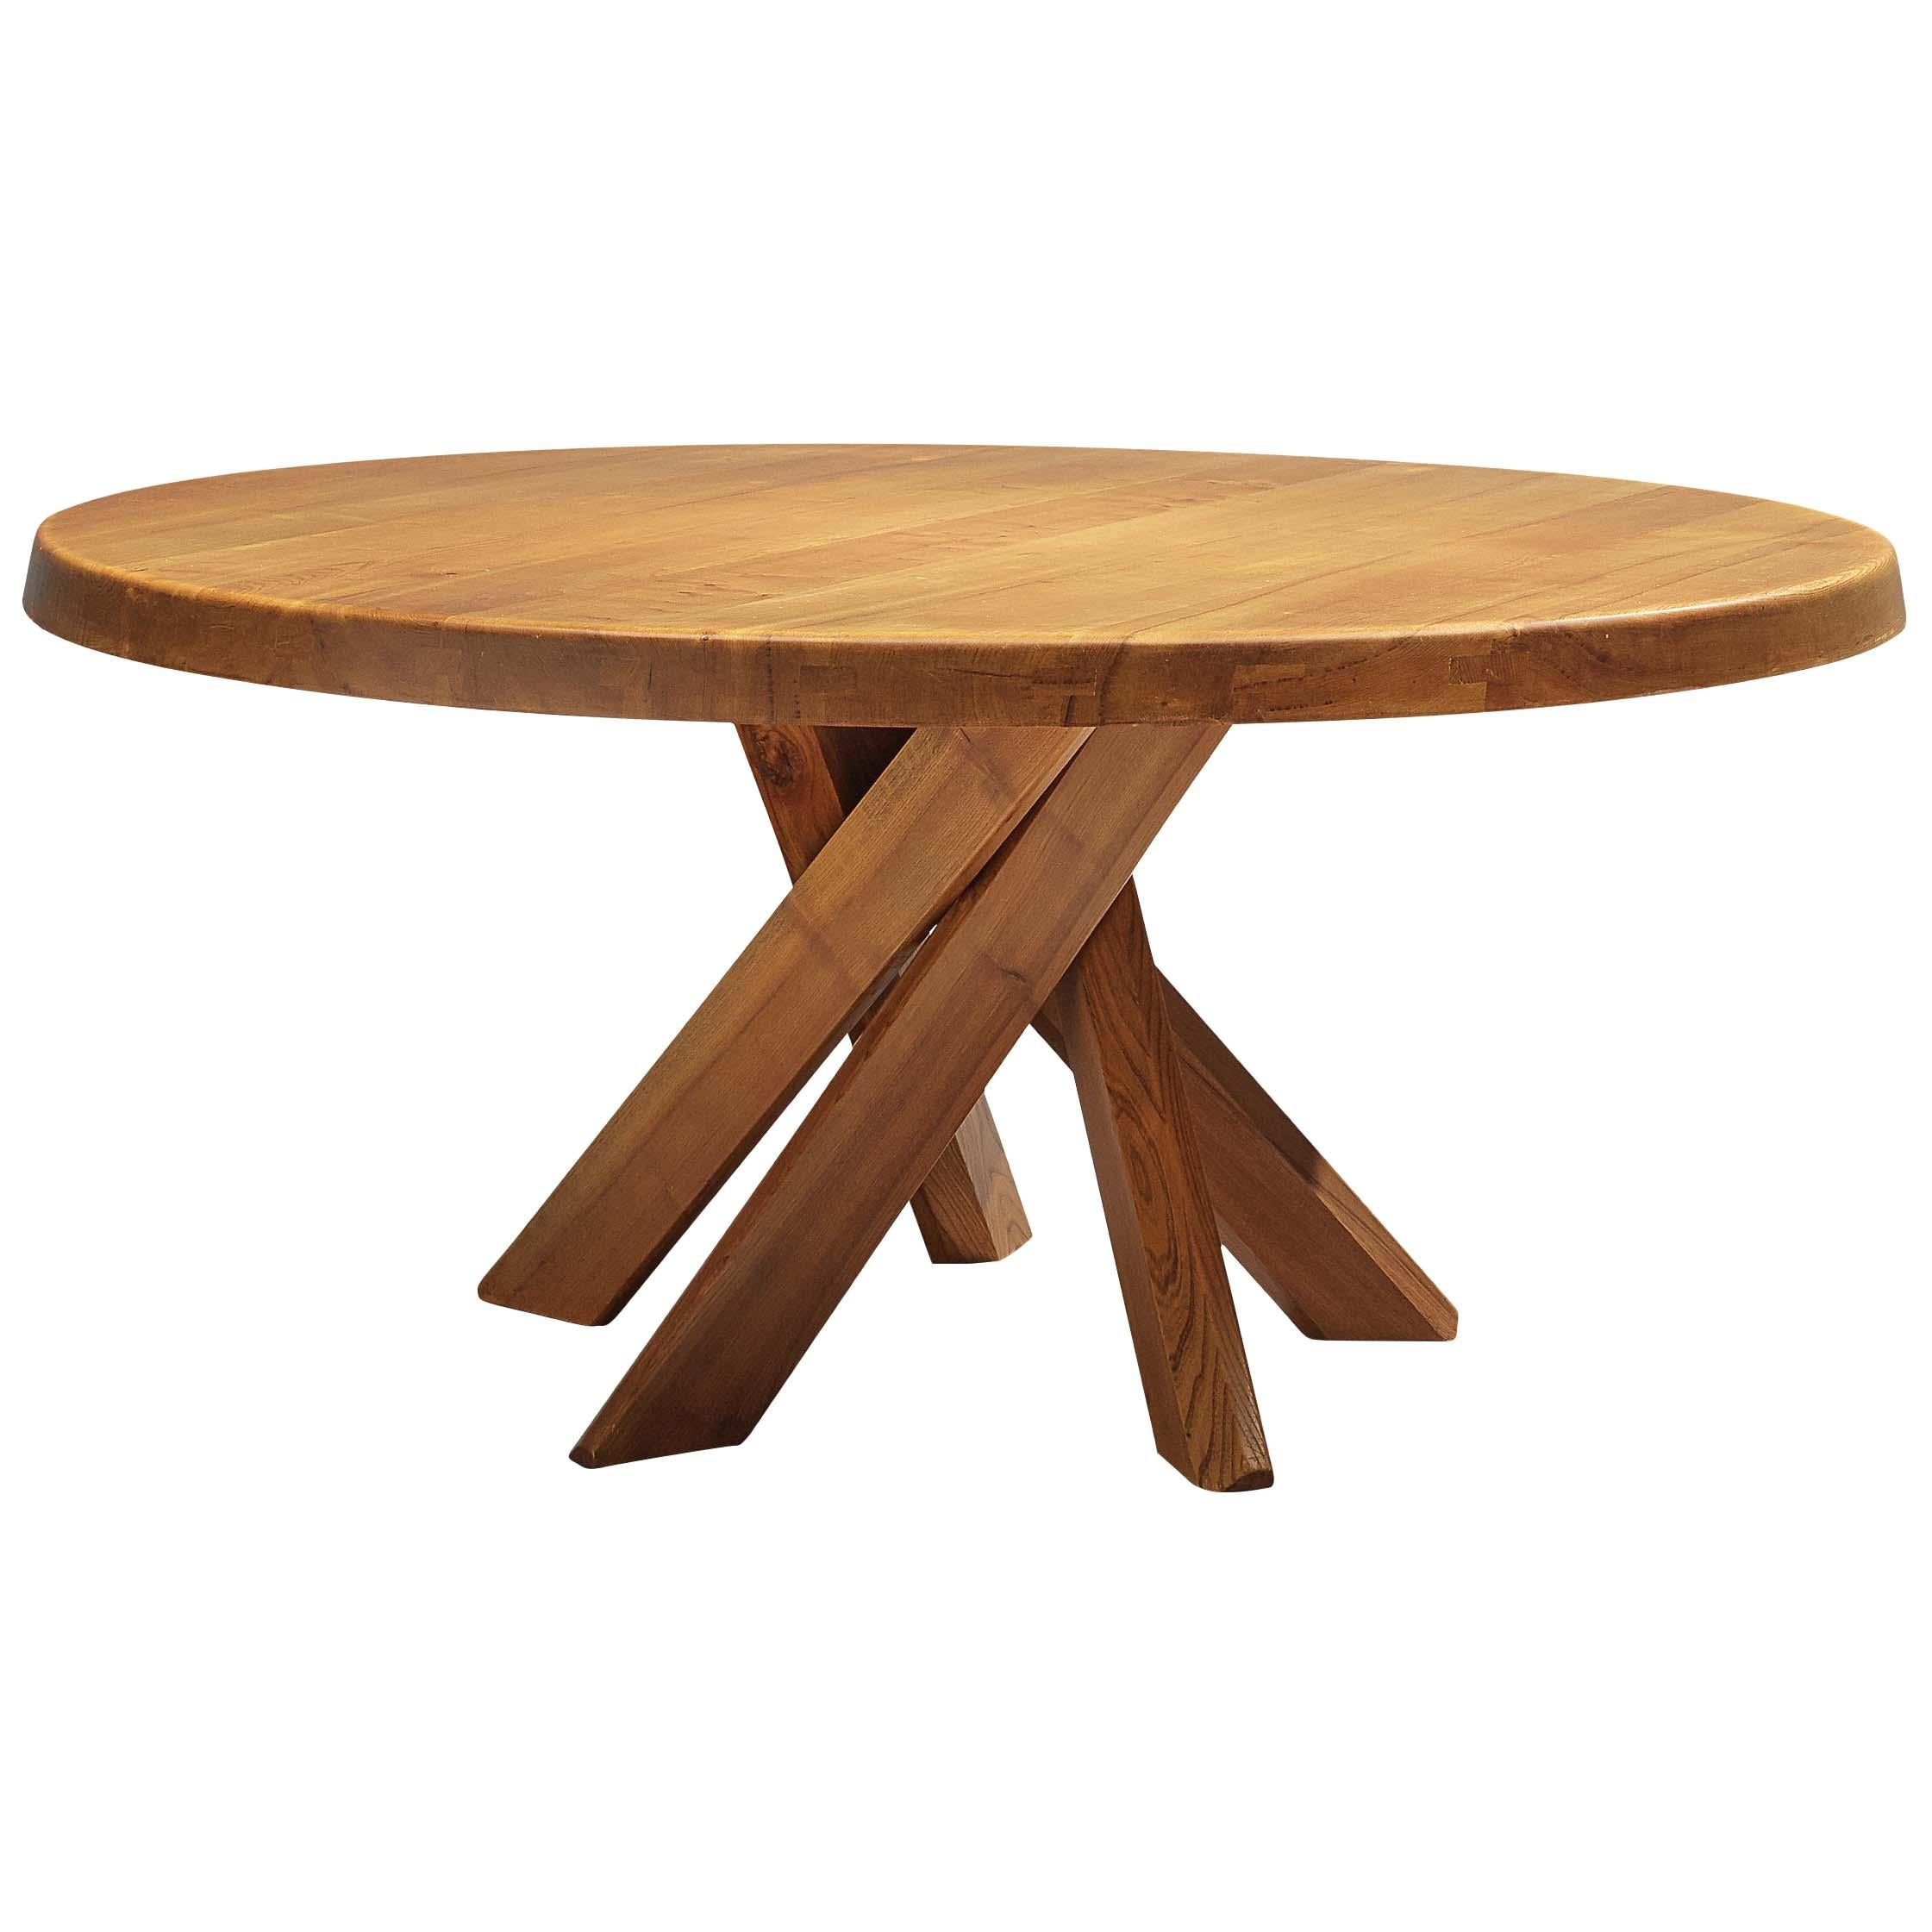 Pierre Chapo T21E 'Sfax' Dining Table in Solid Elm